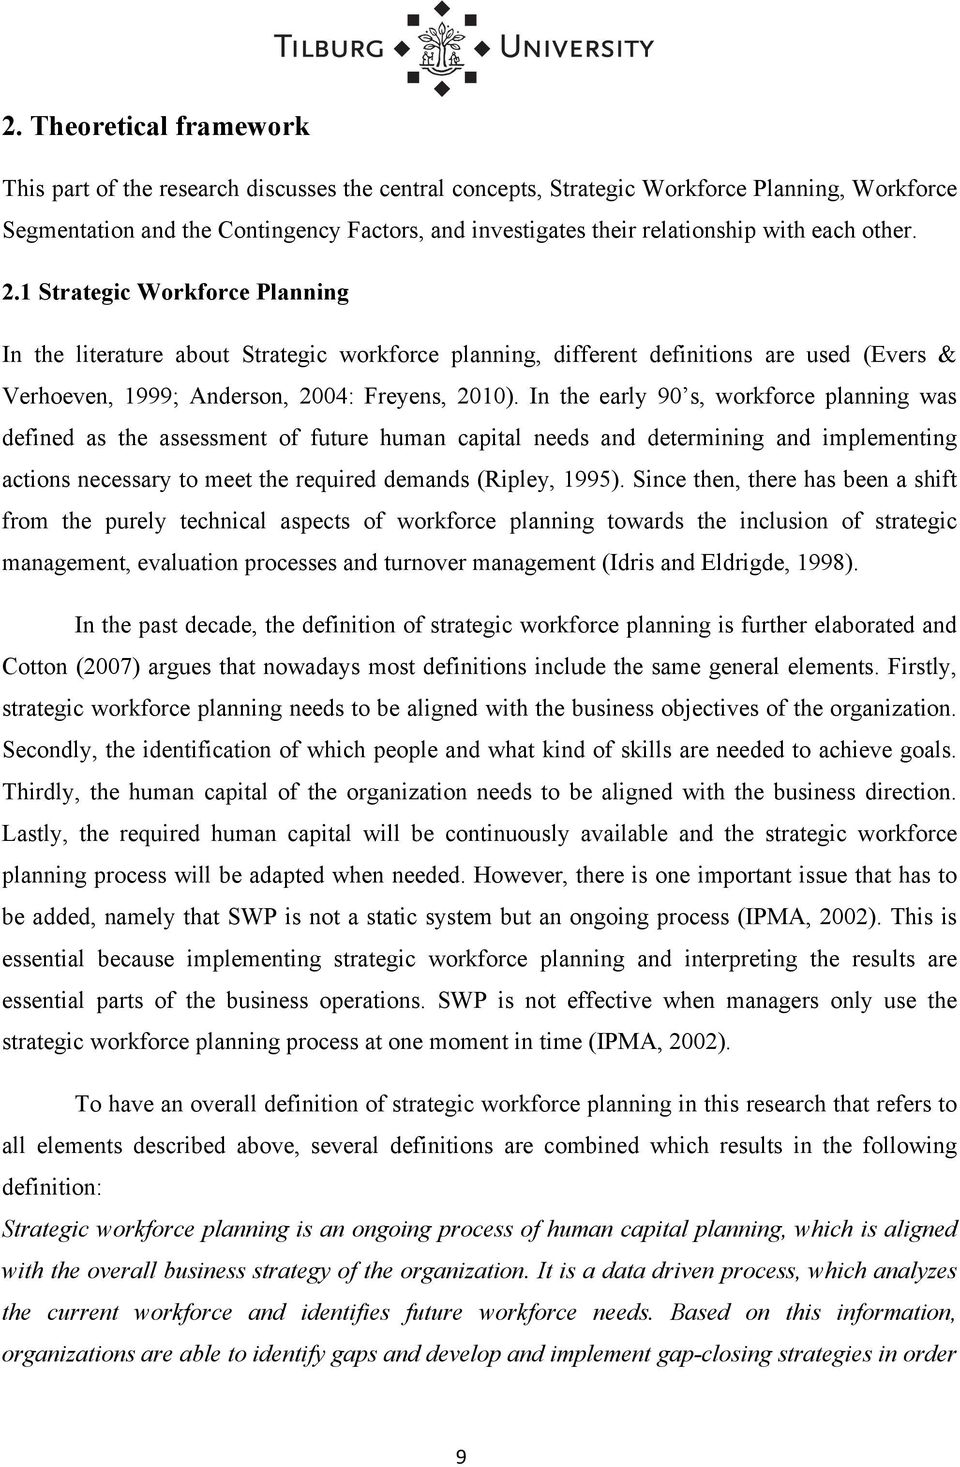 1 Strategic Workforce Planning In the literature about Strategic workforce planning, different definitions are used (Evers & Verhoeven, 1999; Anderson, 2004: Freyens, 2010).